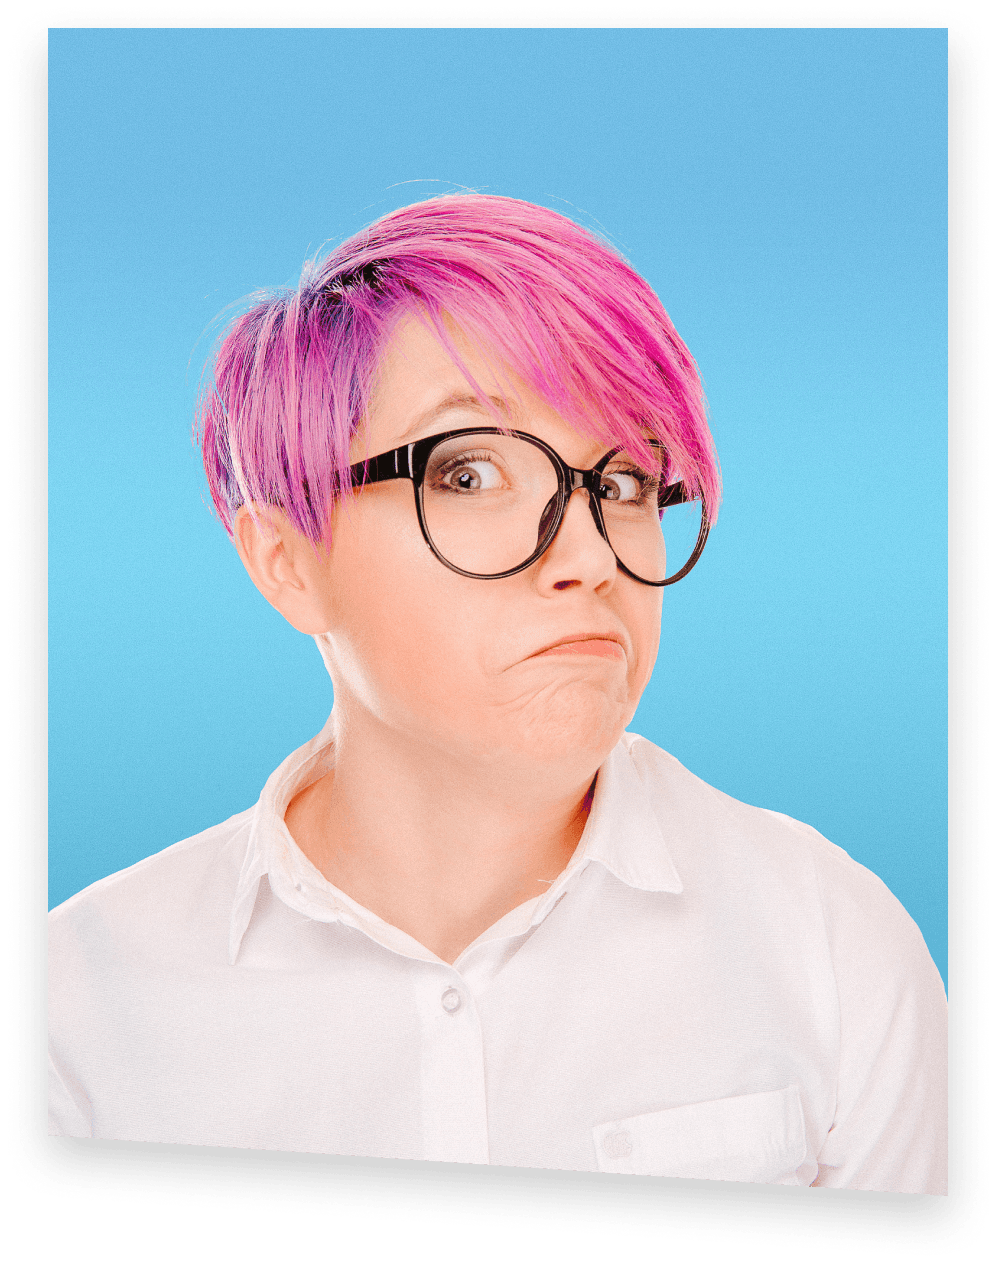 Shmoop test prep student, a curious girl with pink hair and glasses